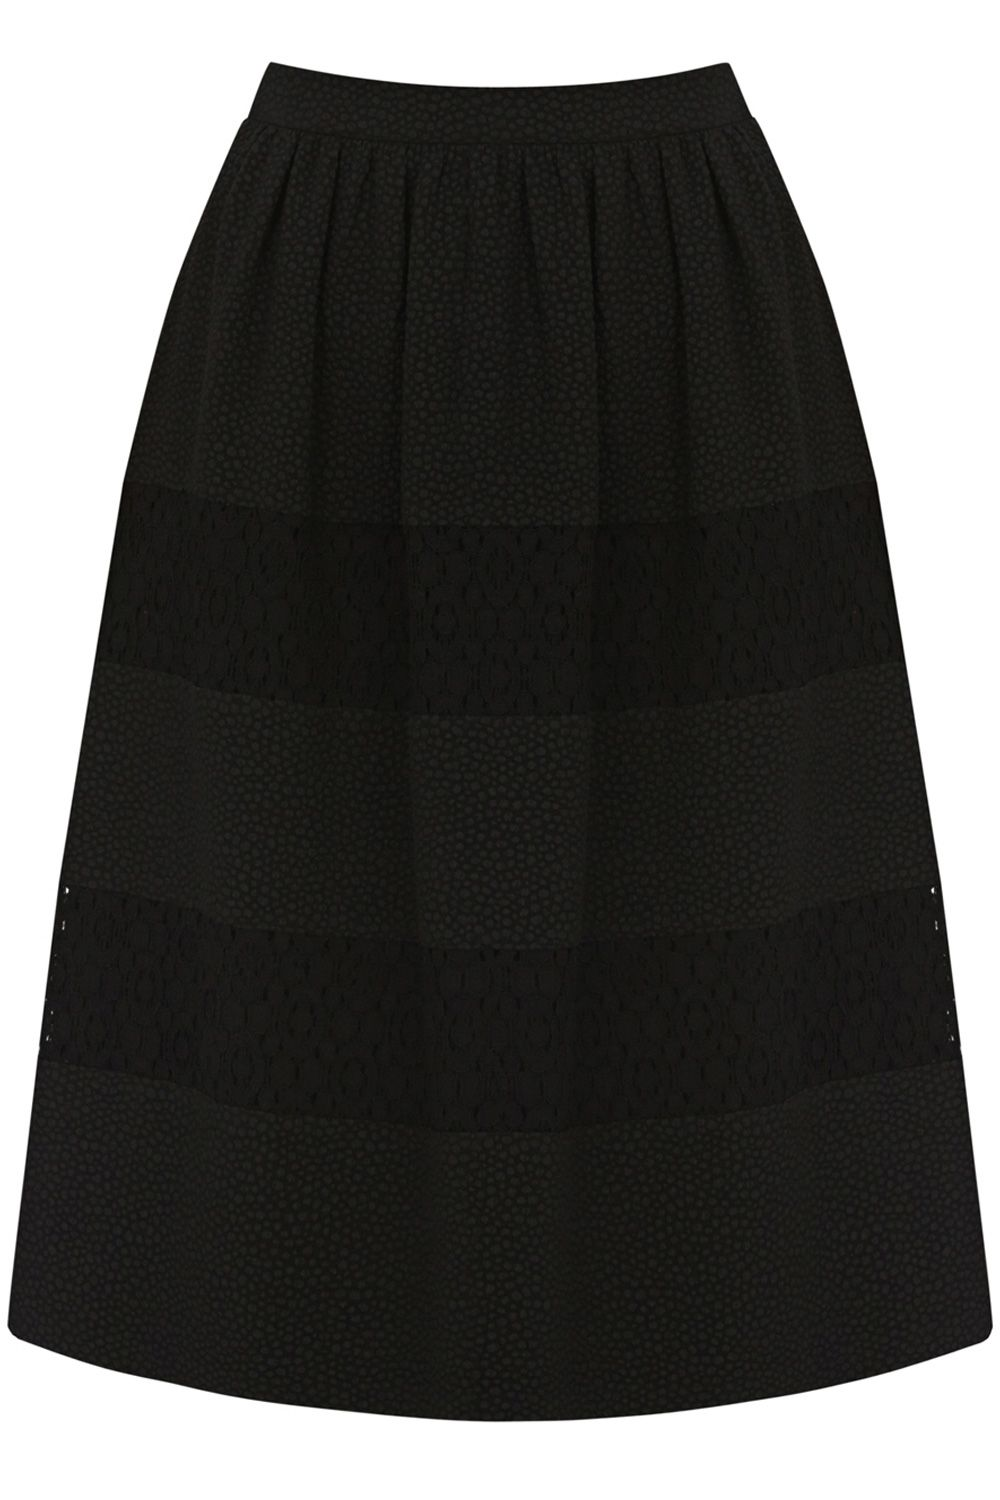 Bubble crepe lace insert midi skirt